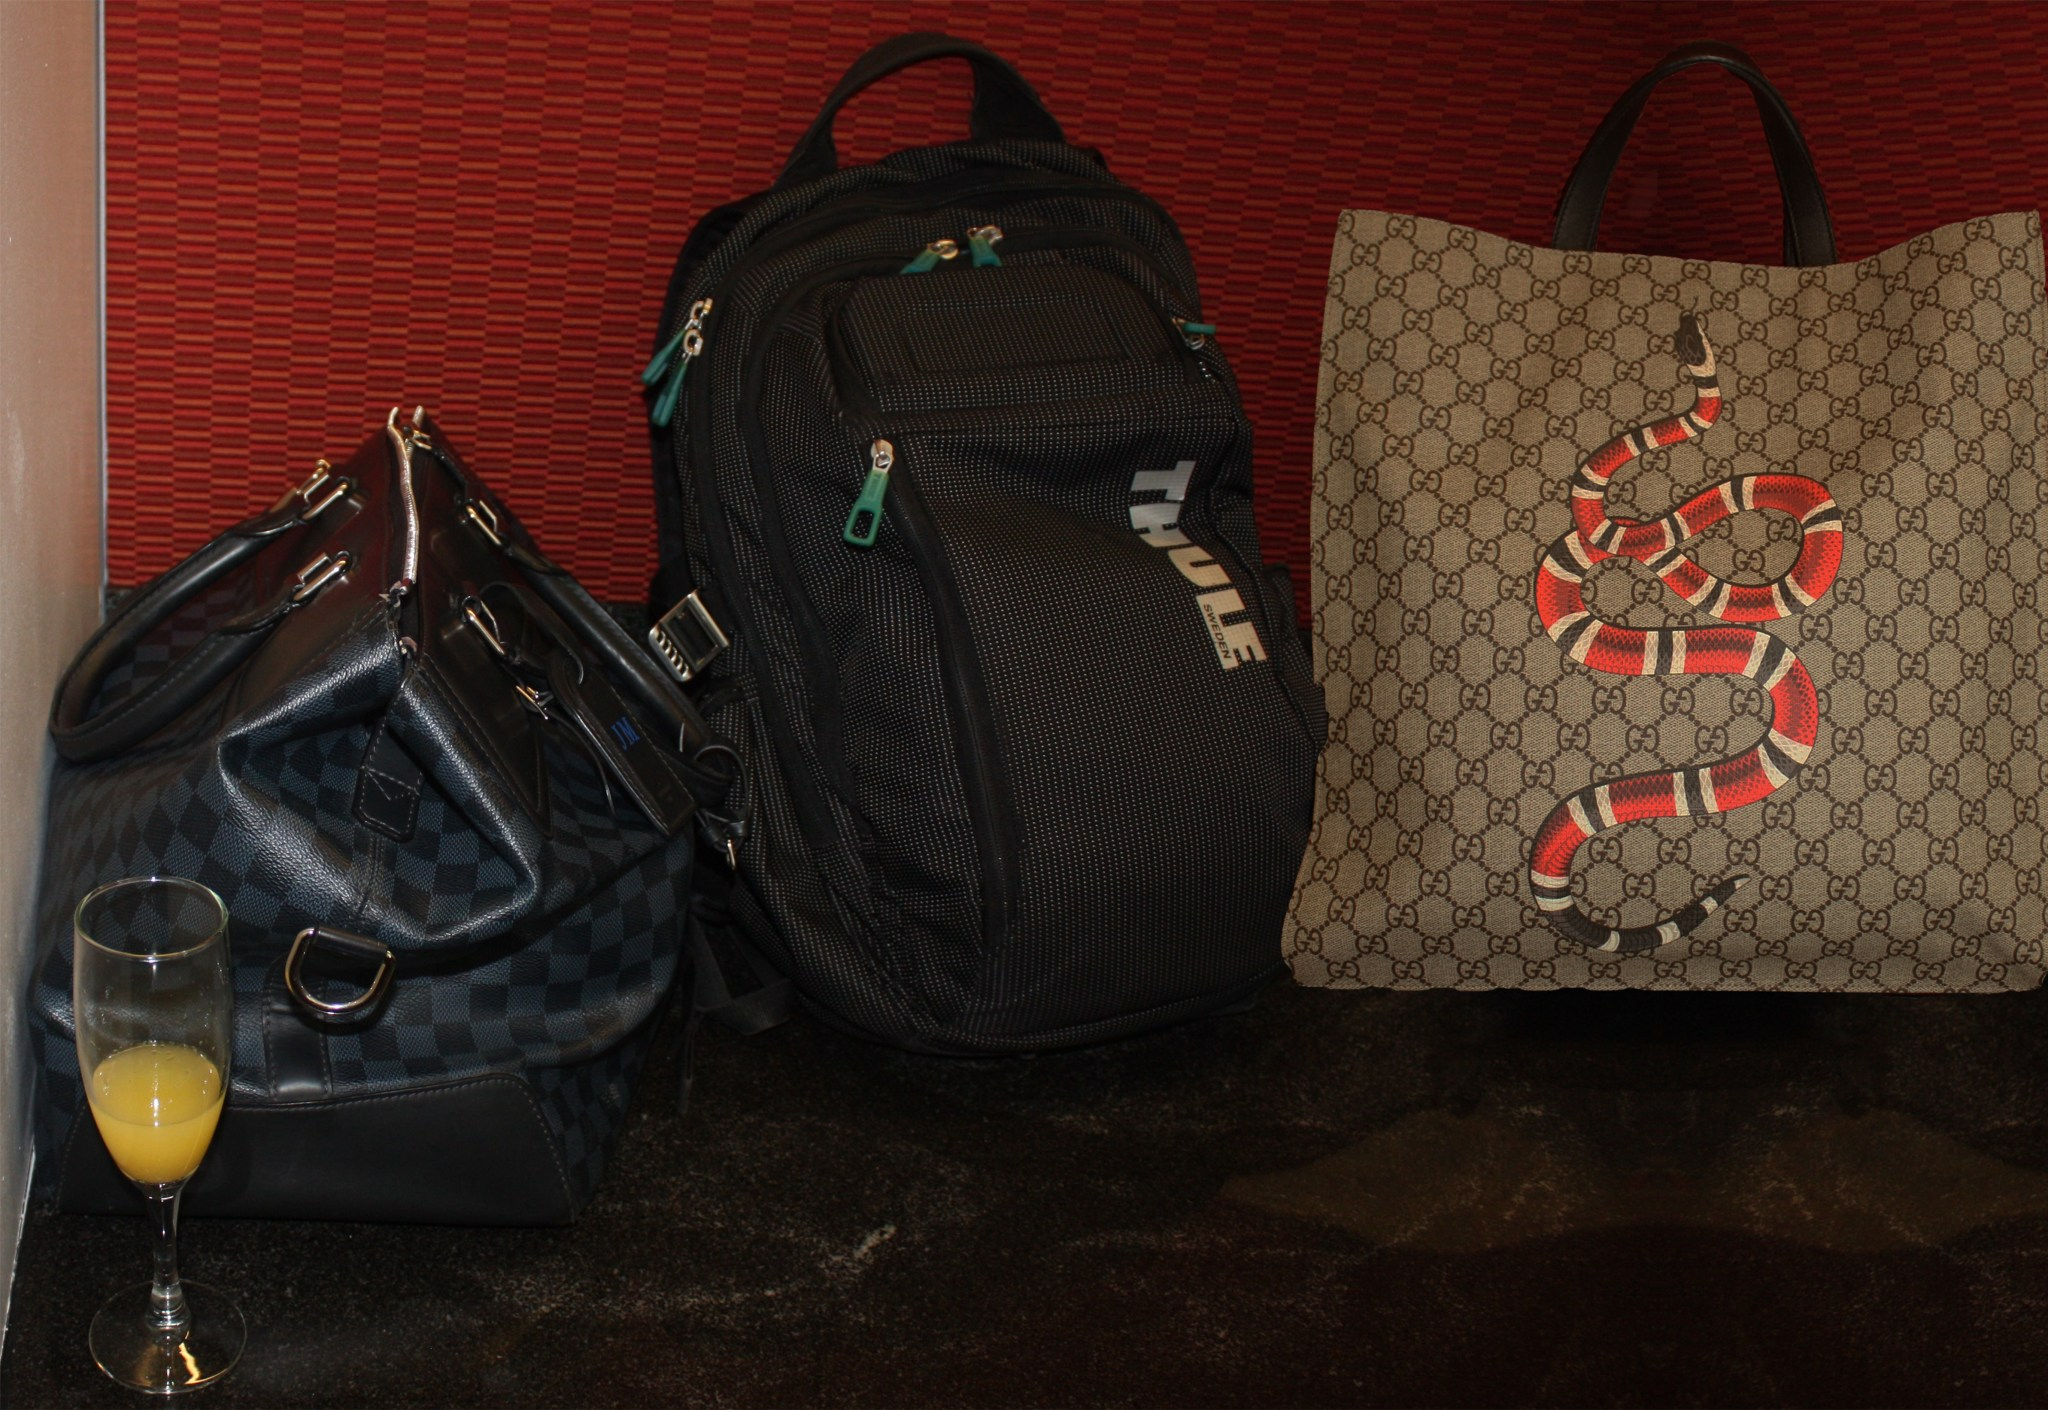 Speakers' tote bags, including a Gucci bag with a snake